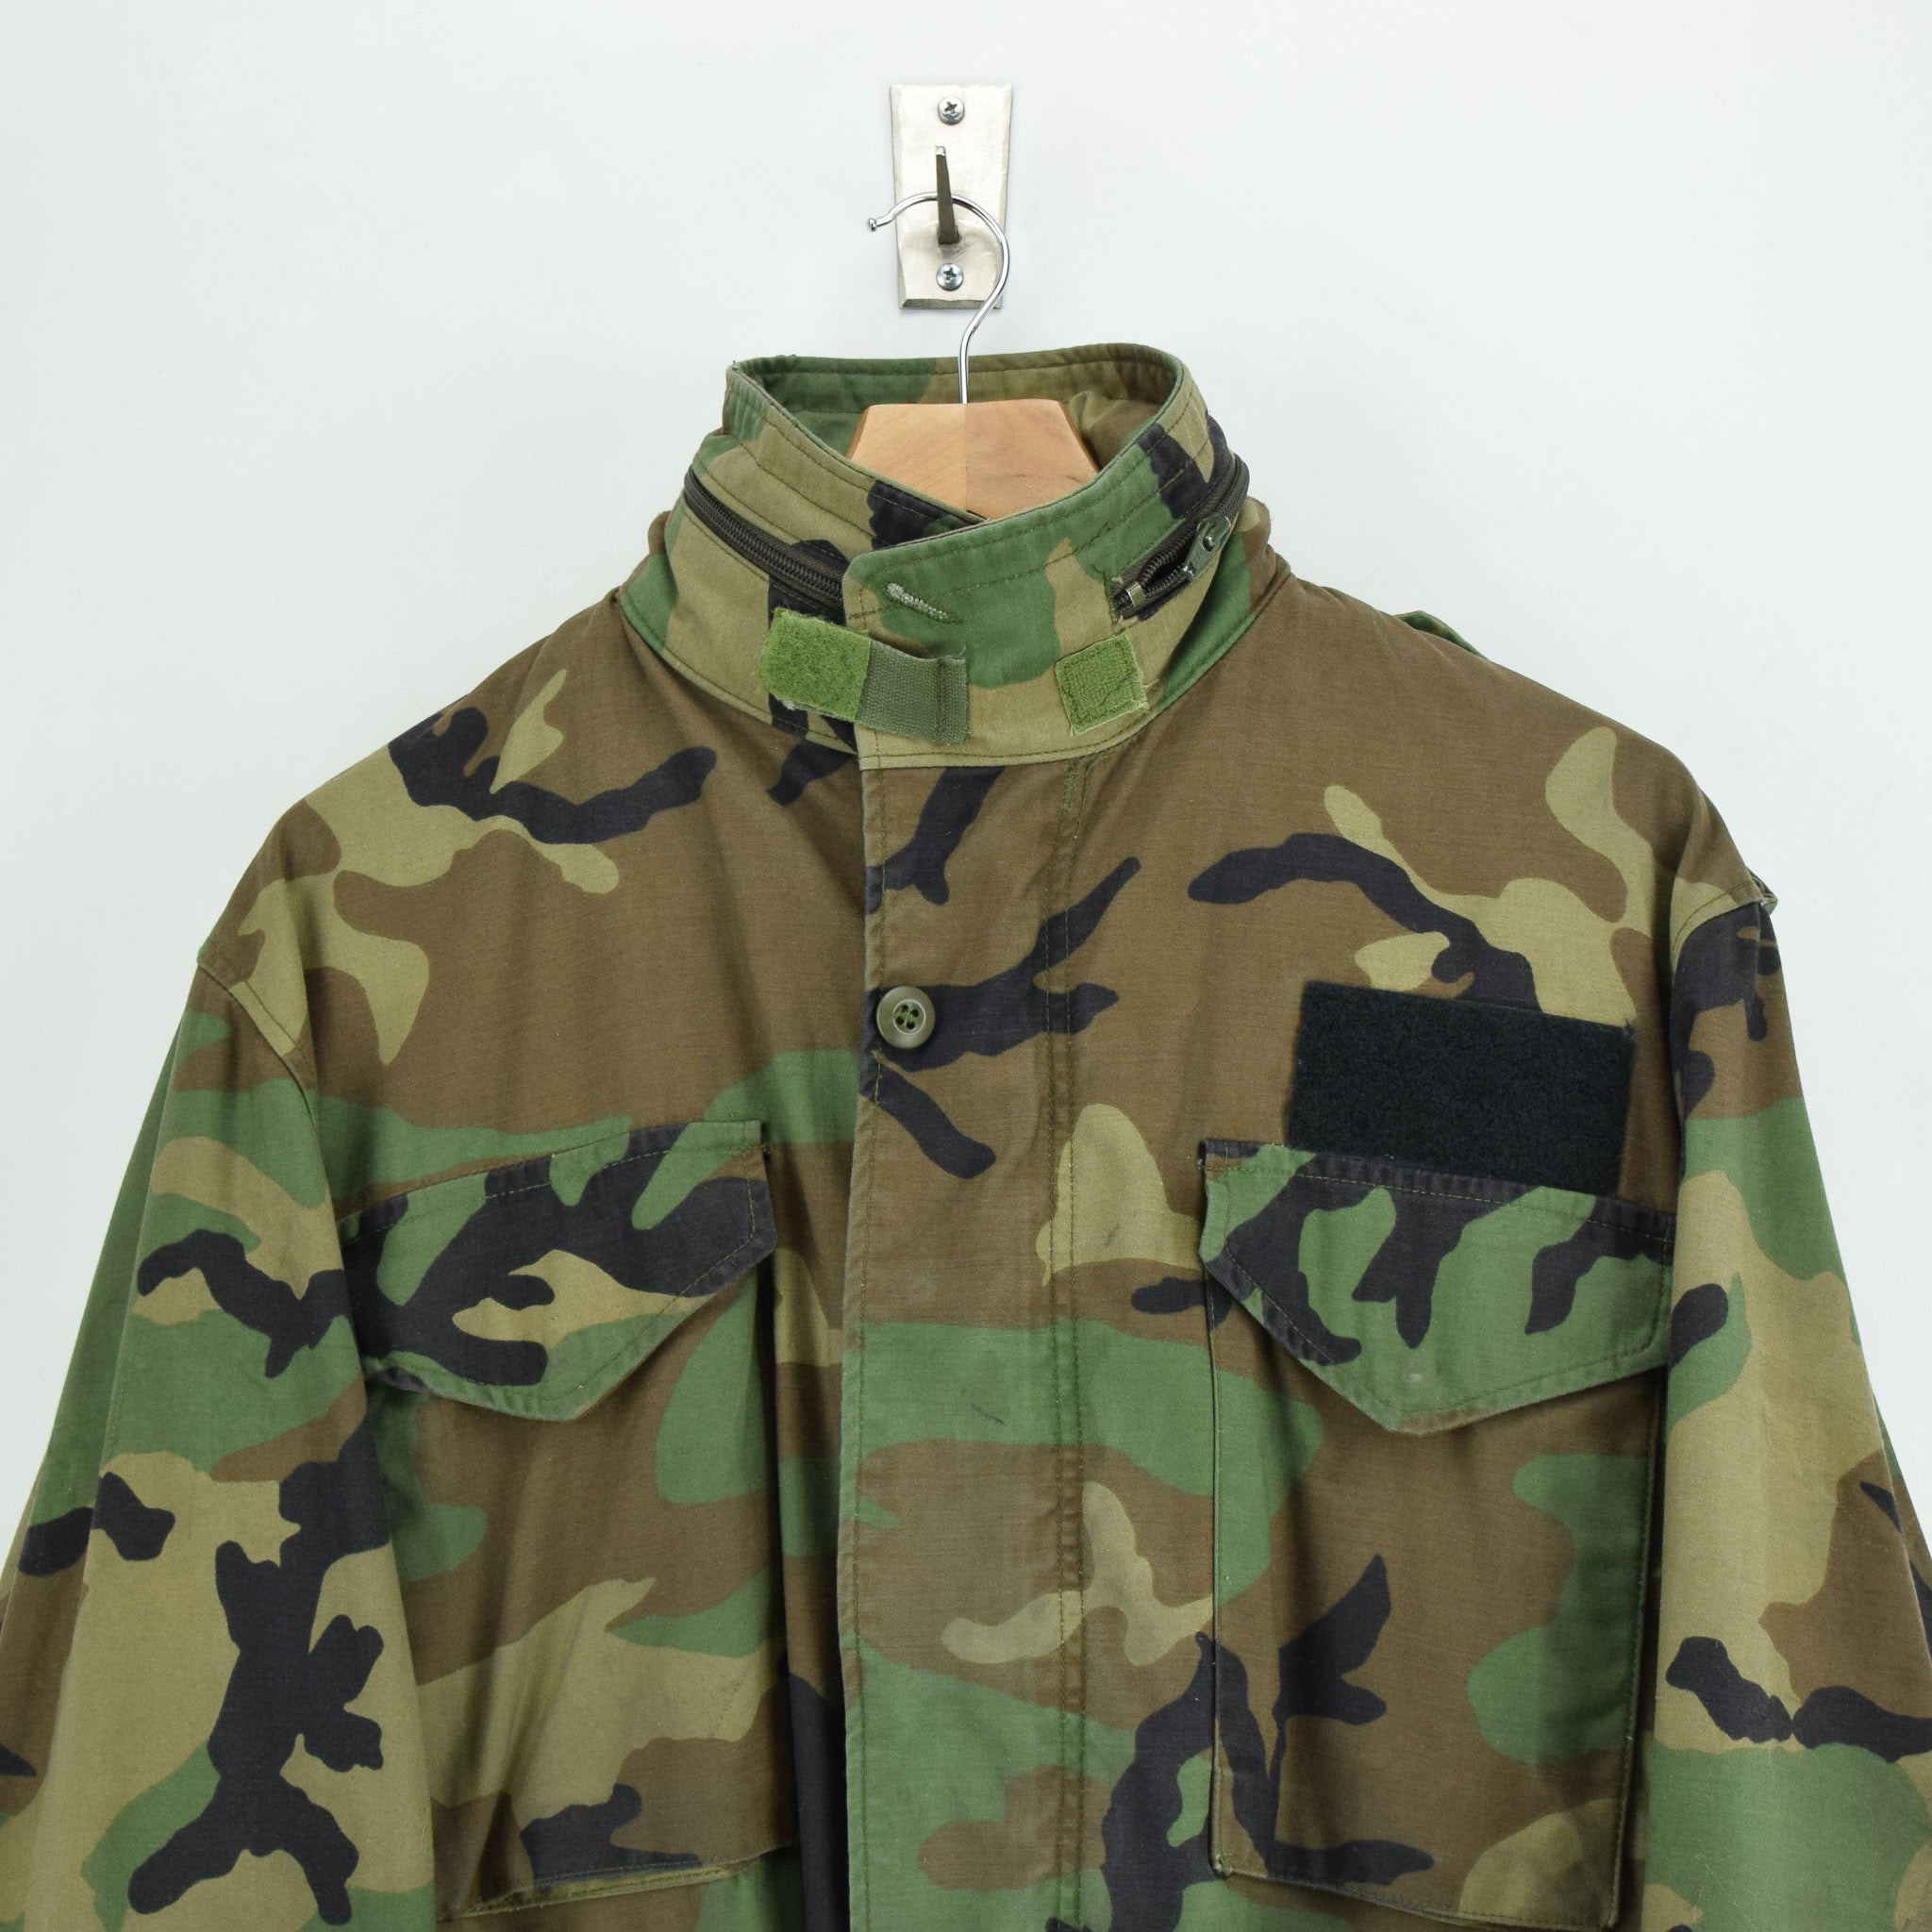 Vintage 80s M-65 Woodland Camouflage Field Coat Alpha Industries Army Jacket M chest